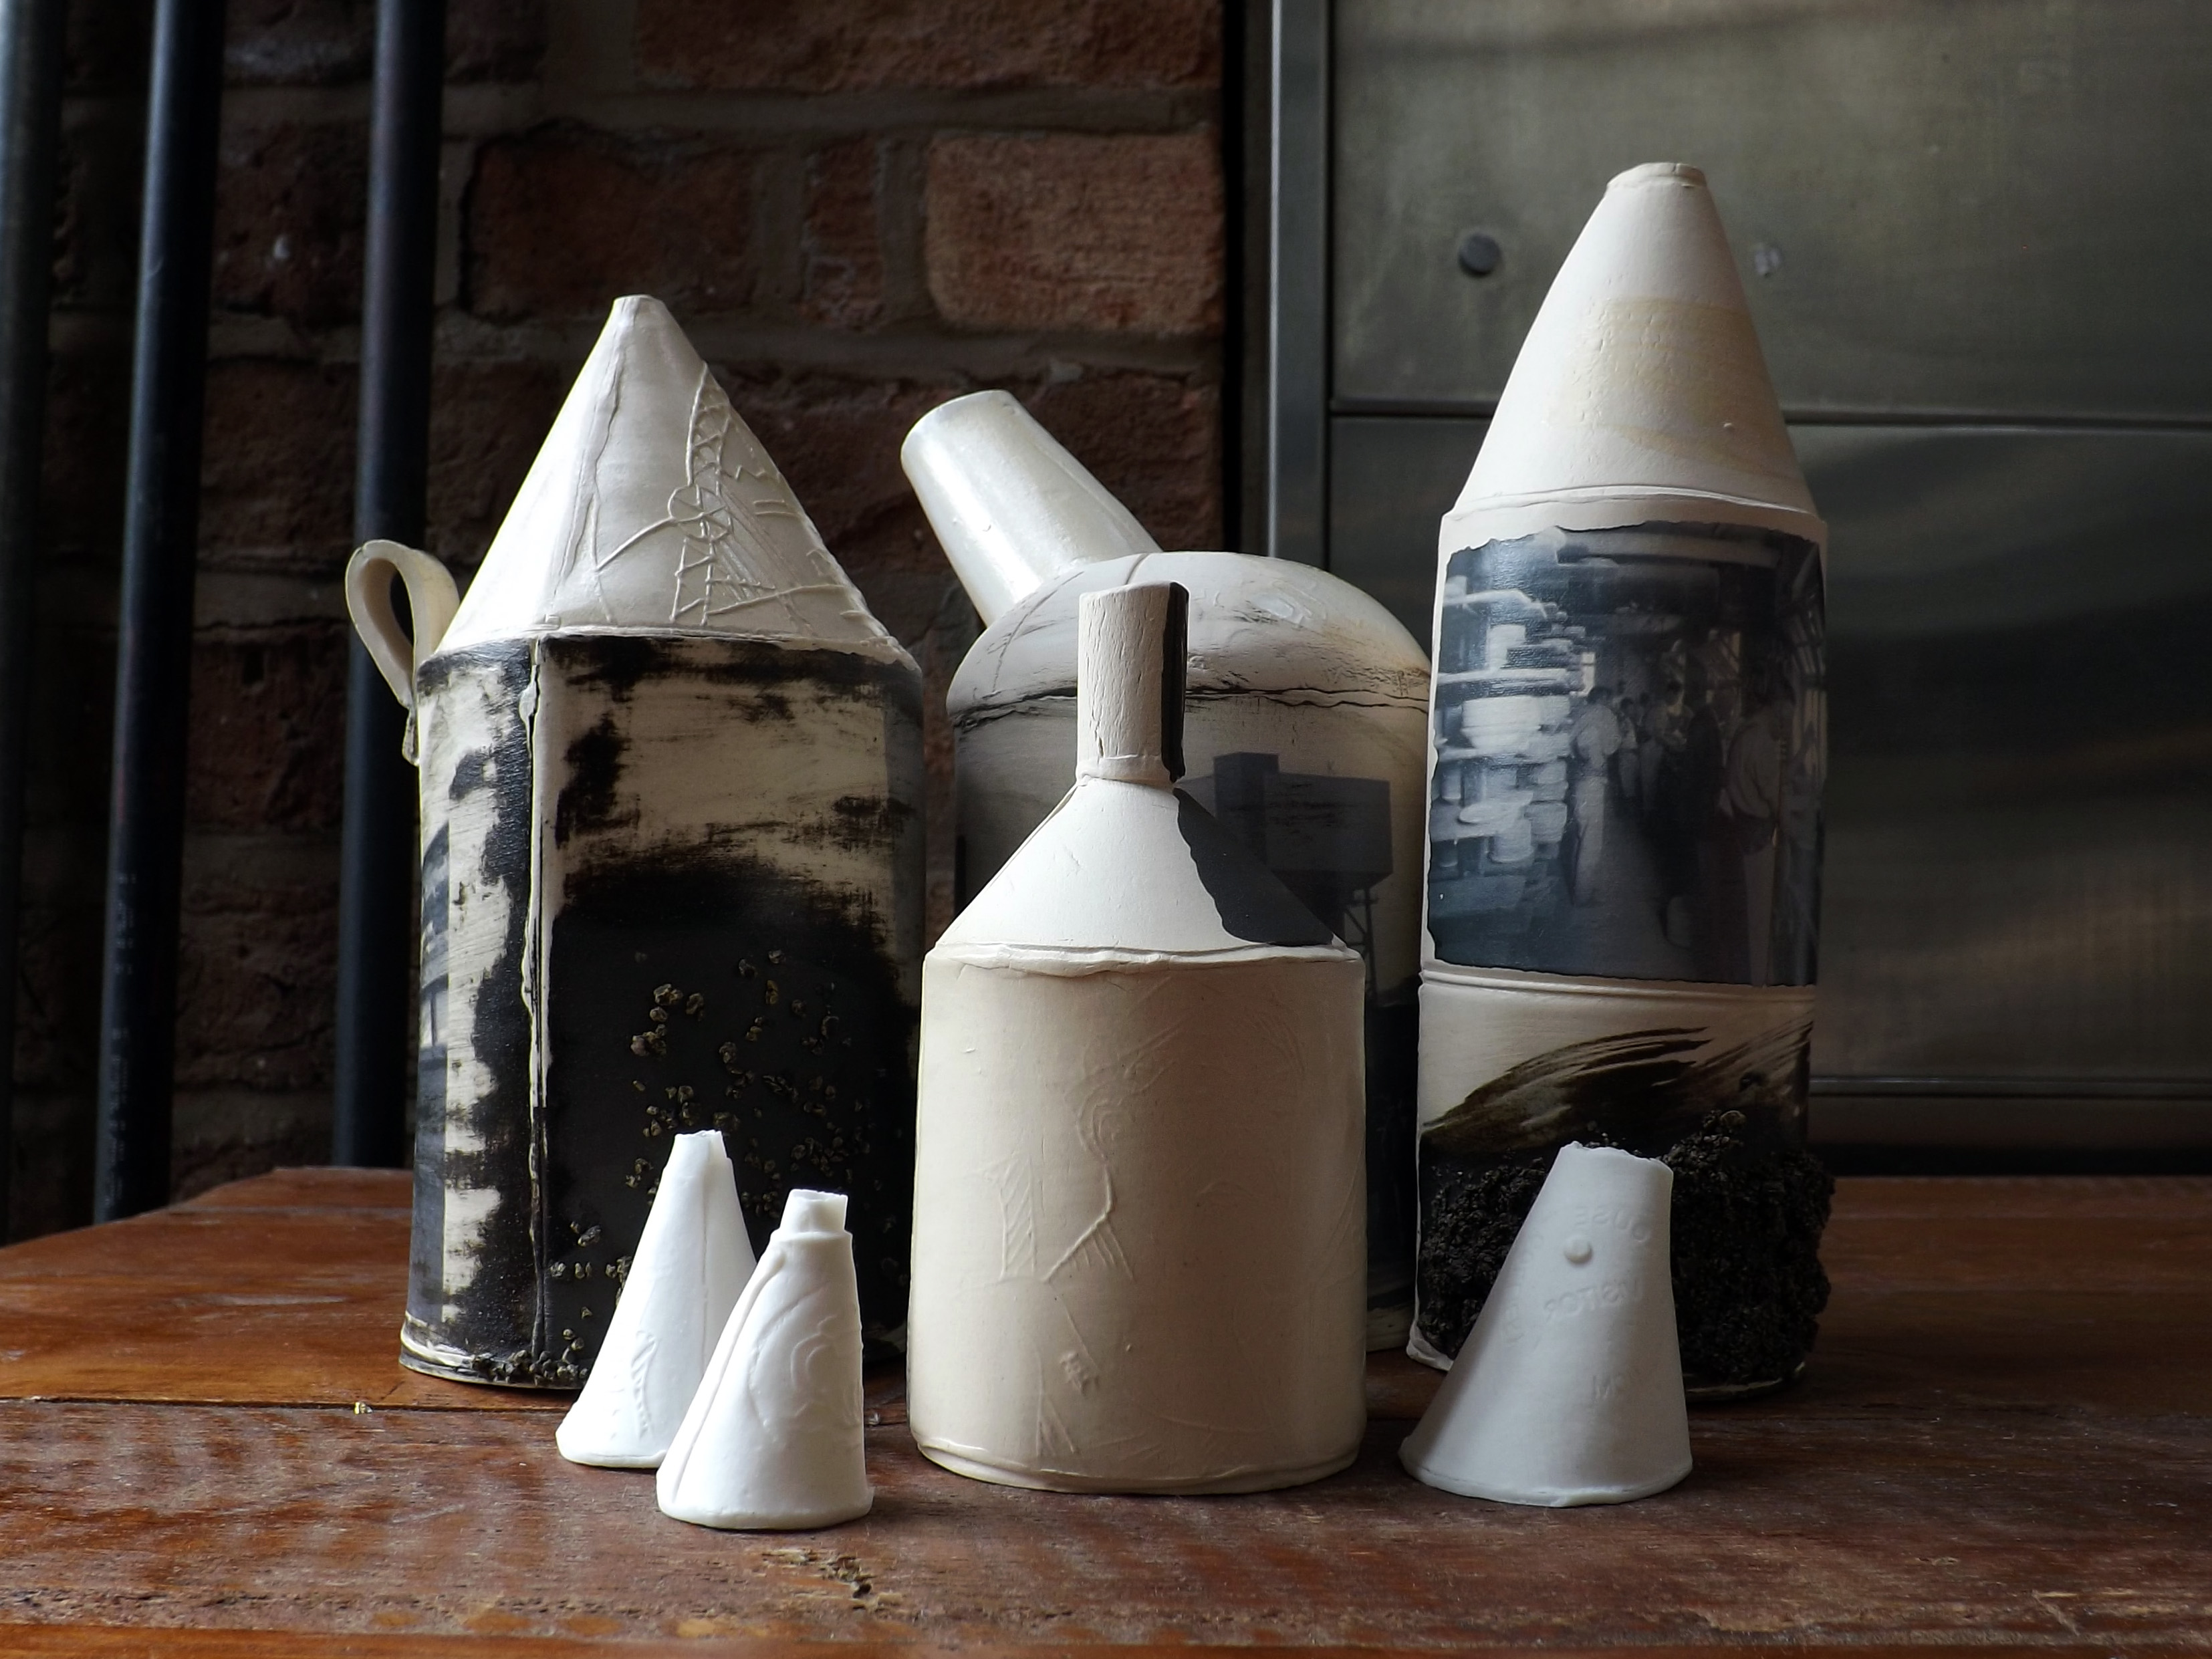 1 Ceramic vessels Stoke-on-Trent